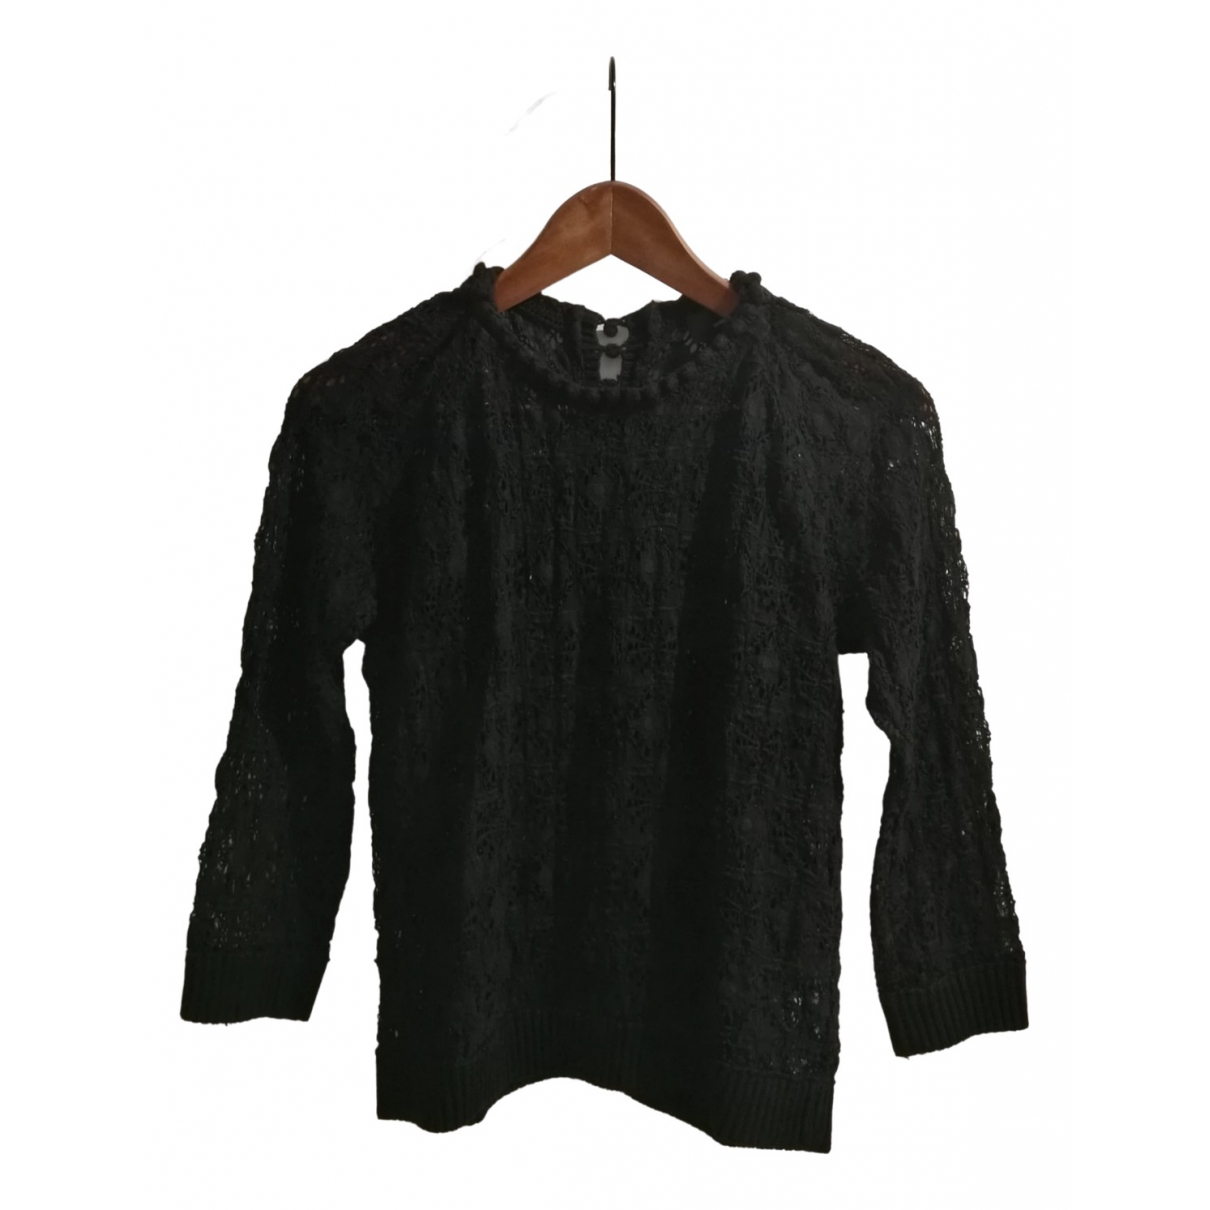 Isabel Marant \N Black Cotton  top for Women 36 FR